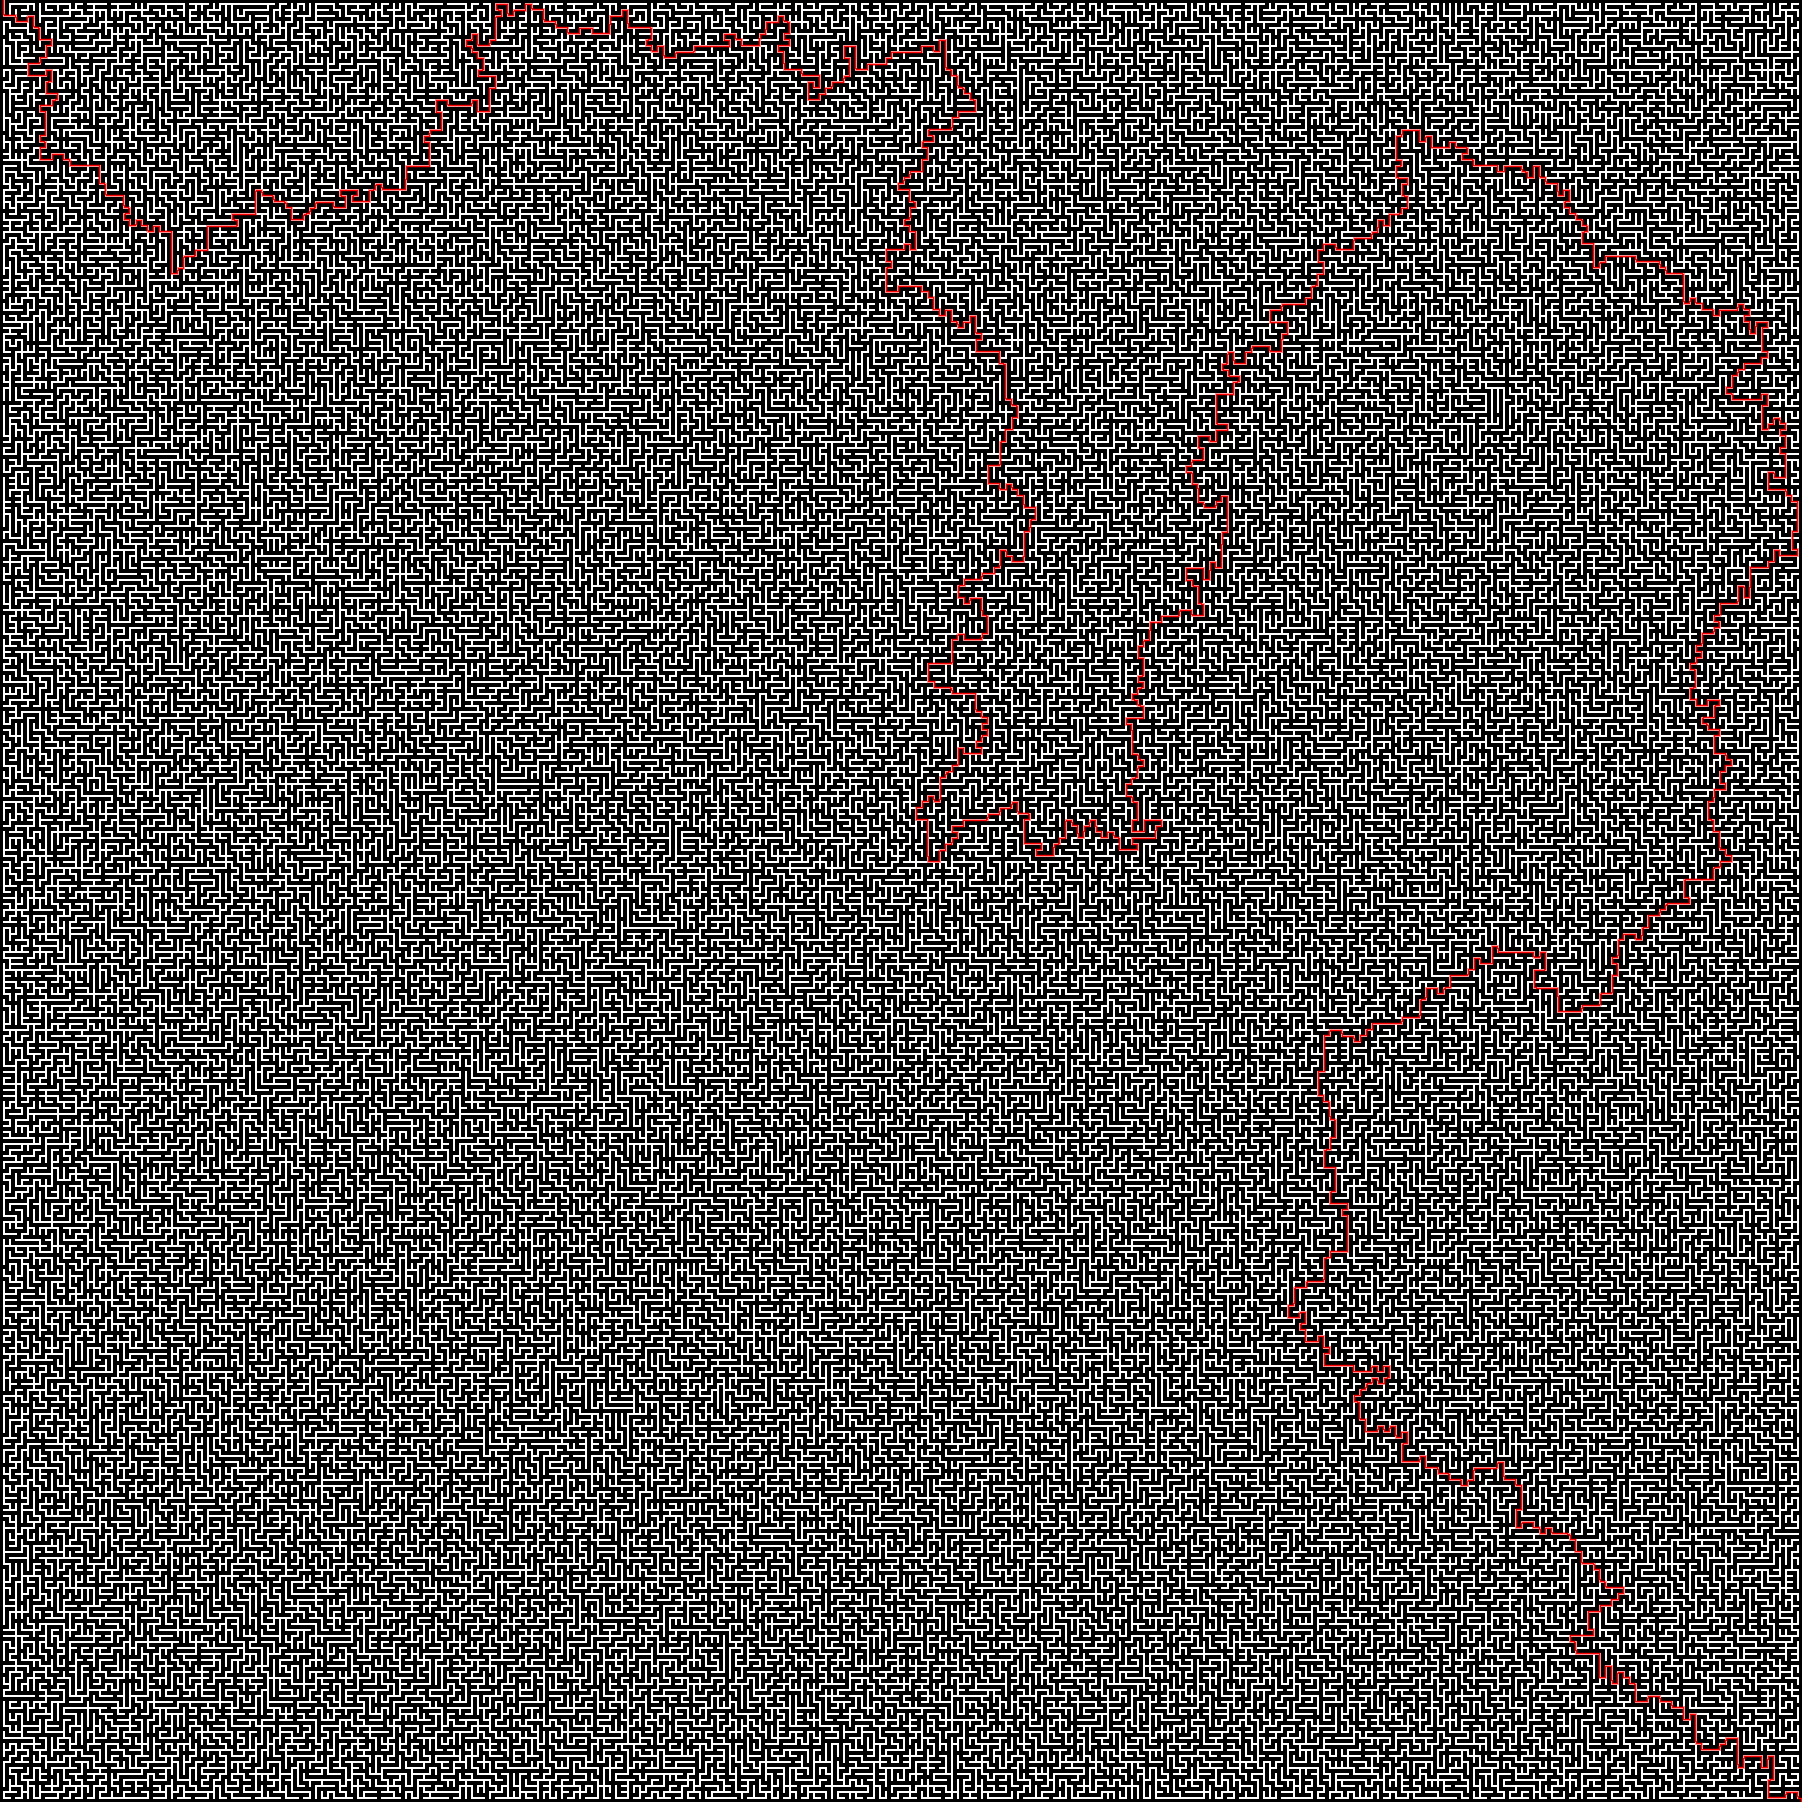 GitHub - zakupower/Maze-Solver: Solves maze images with 1 px